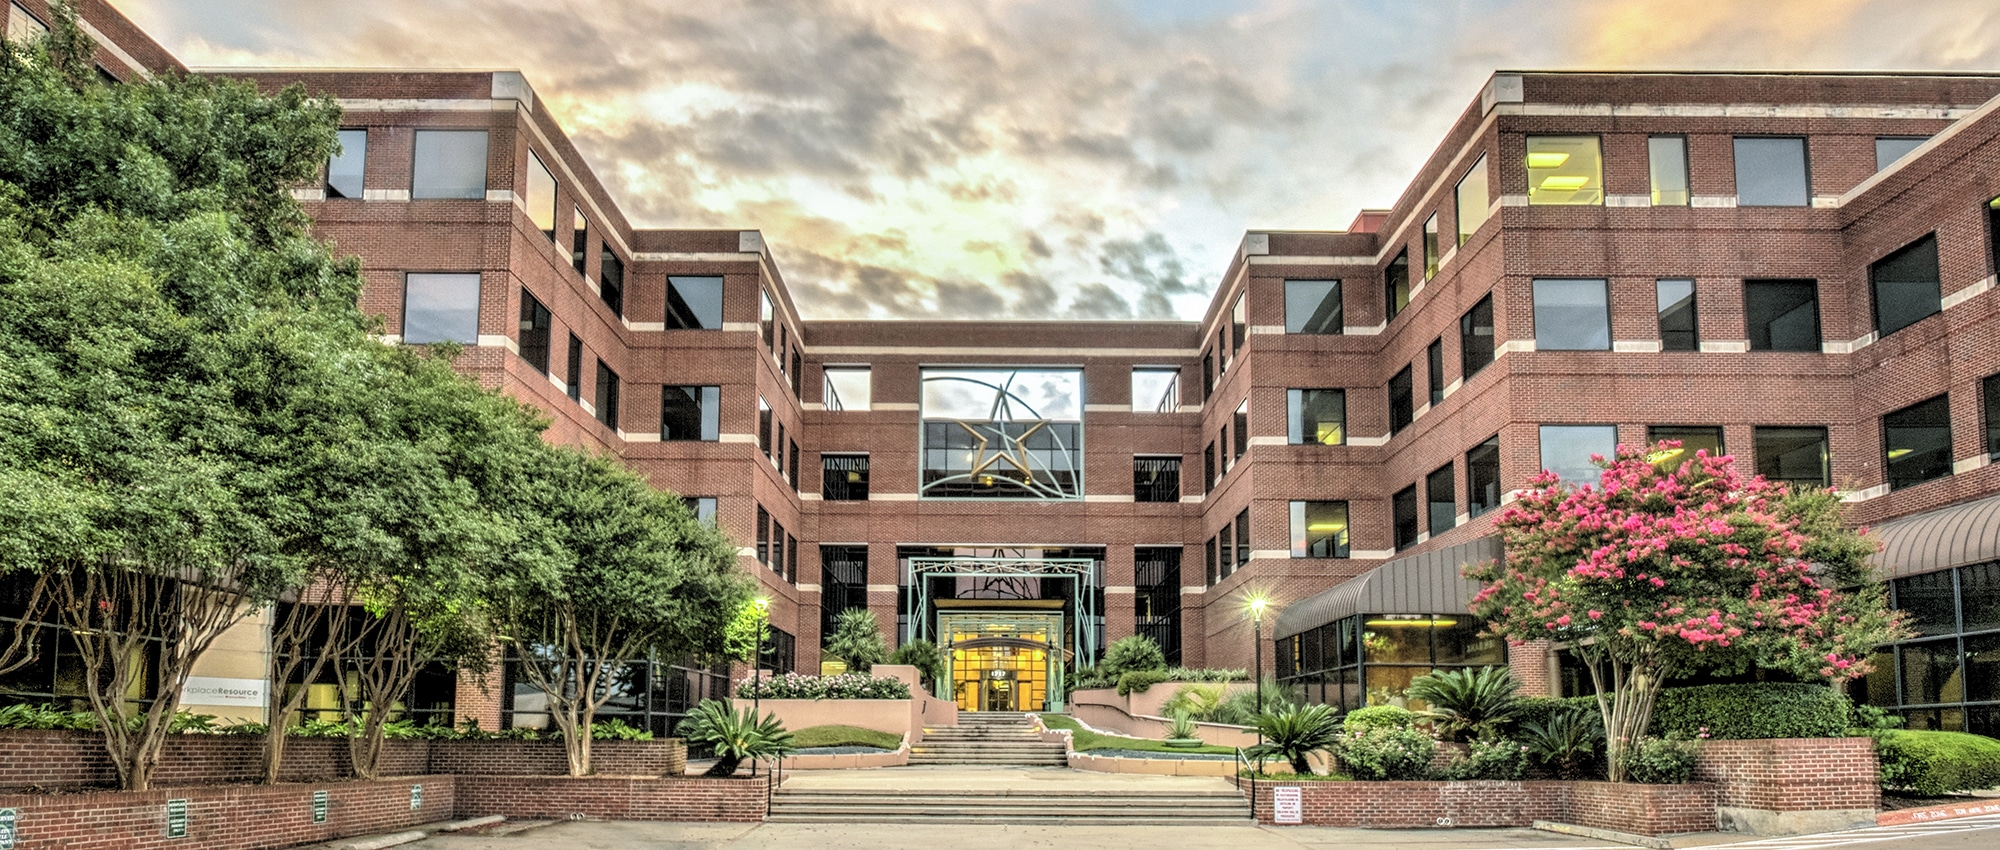 Best Project Leasing Firms in Austin, Texas | Hartland Plaza Leased by AQUILA Commercial